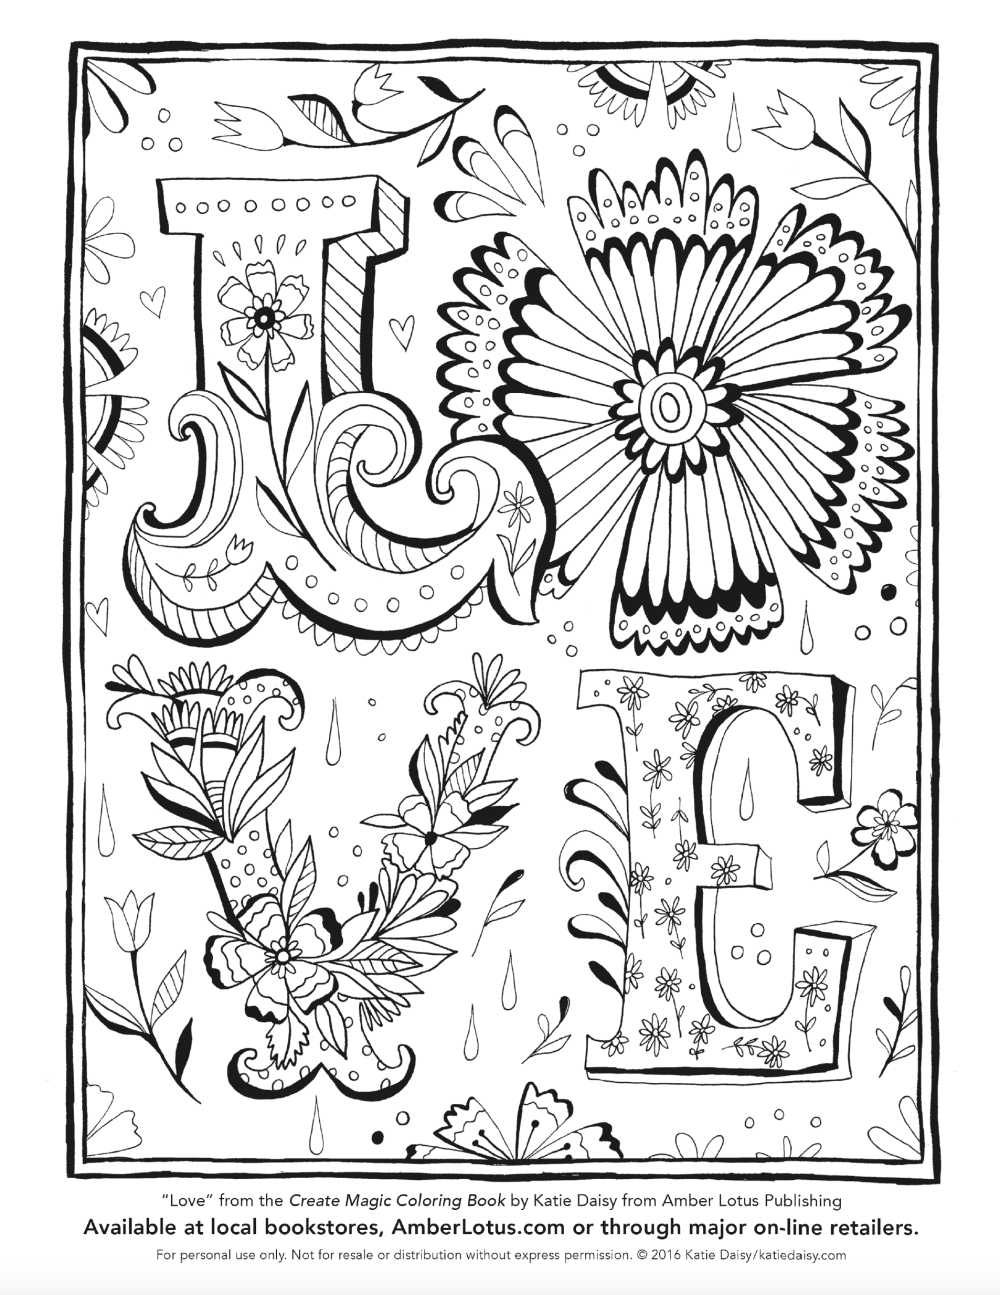 Love Coloring Page By Katie Daisy From The Create Magic Coloring Book Coloring Books Love Coloring Pages Words Coloring Book